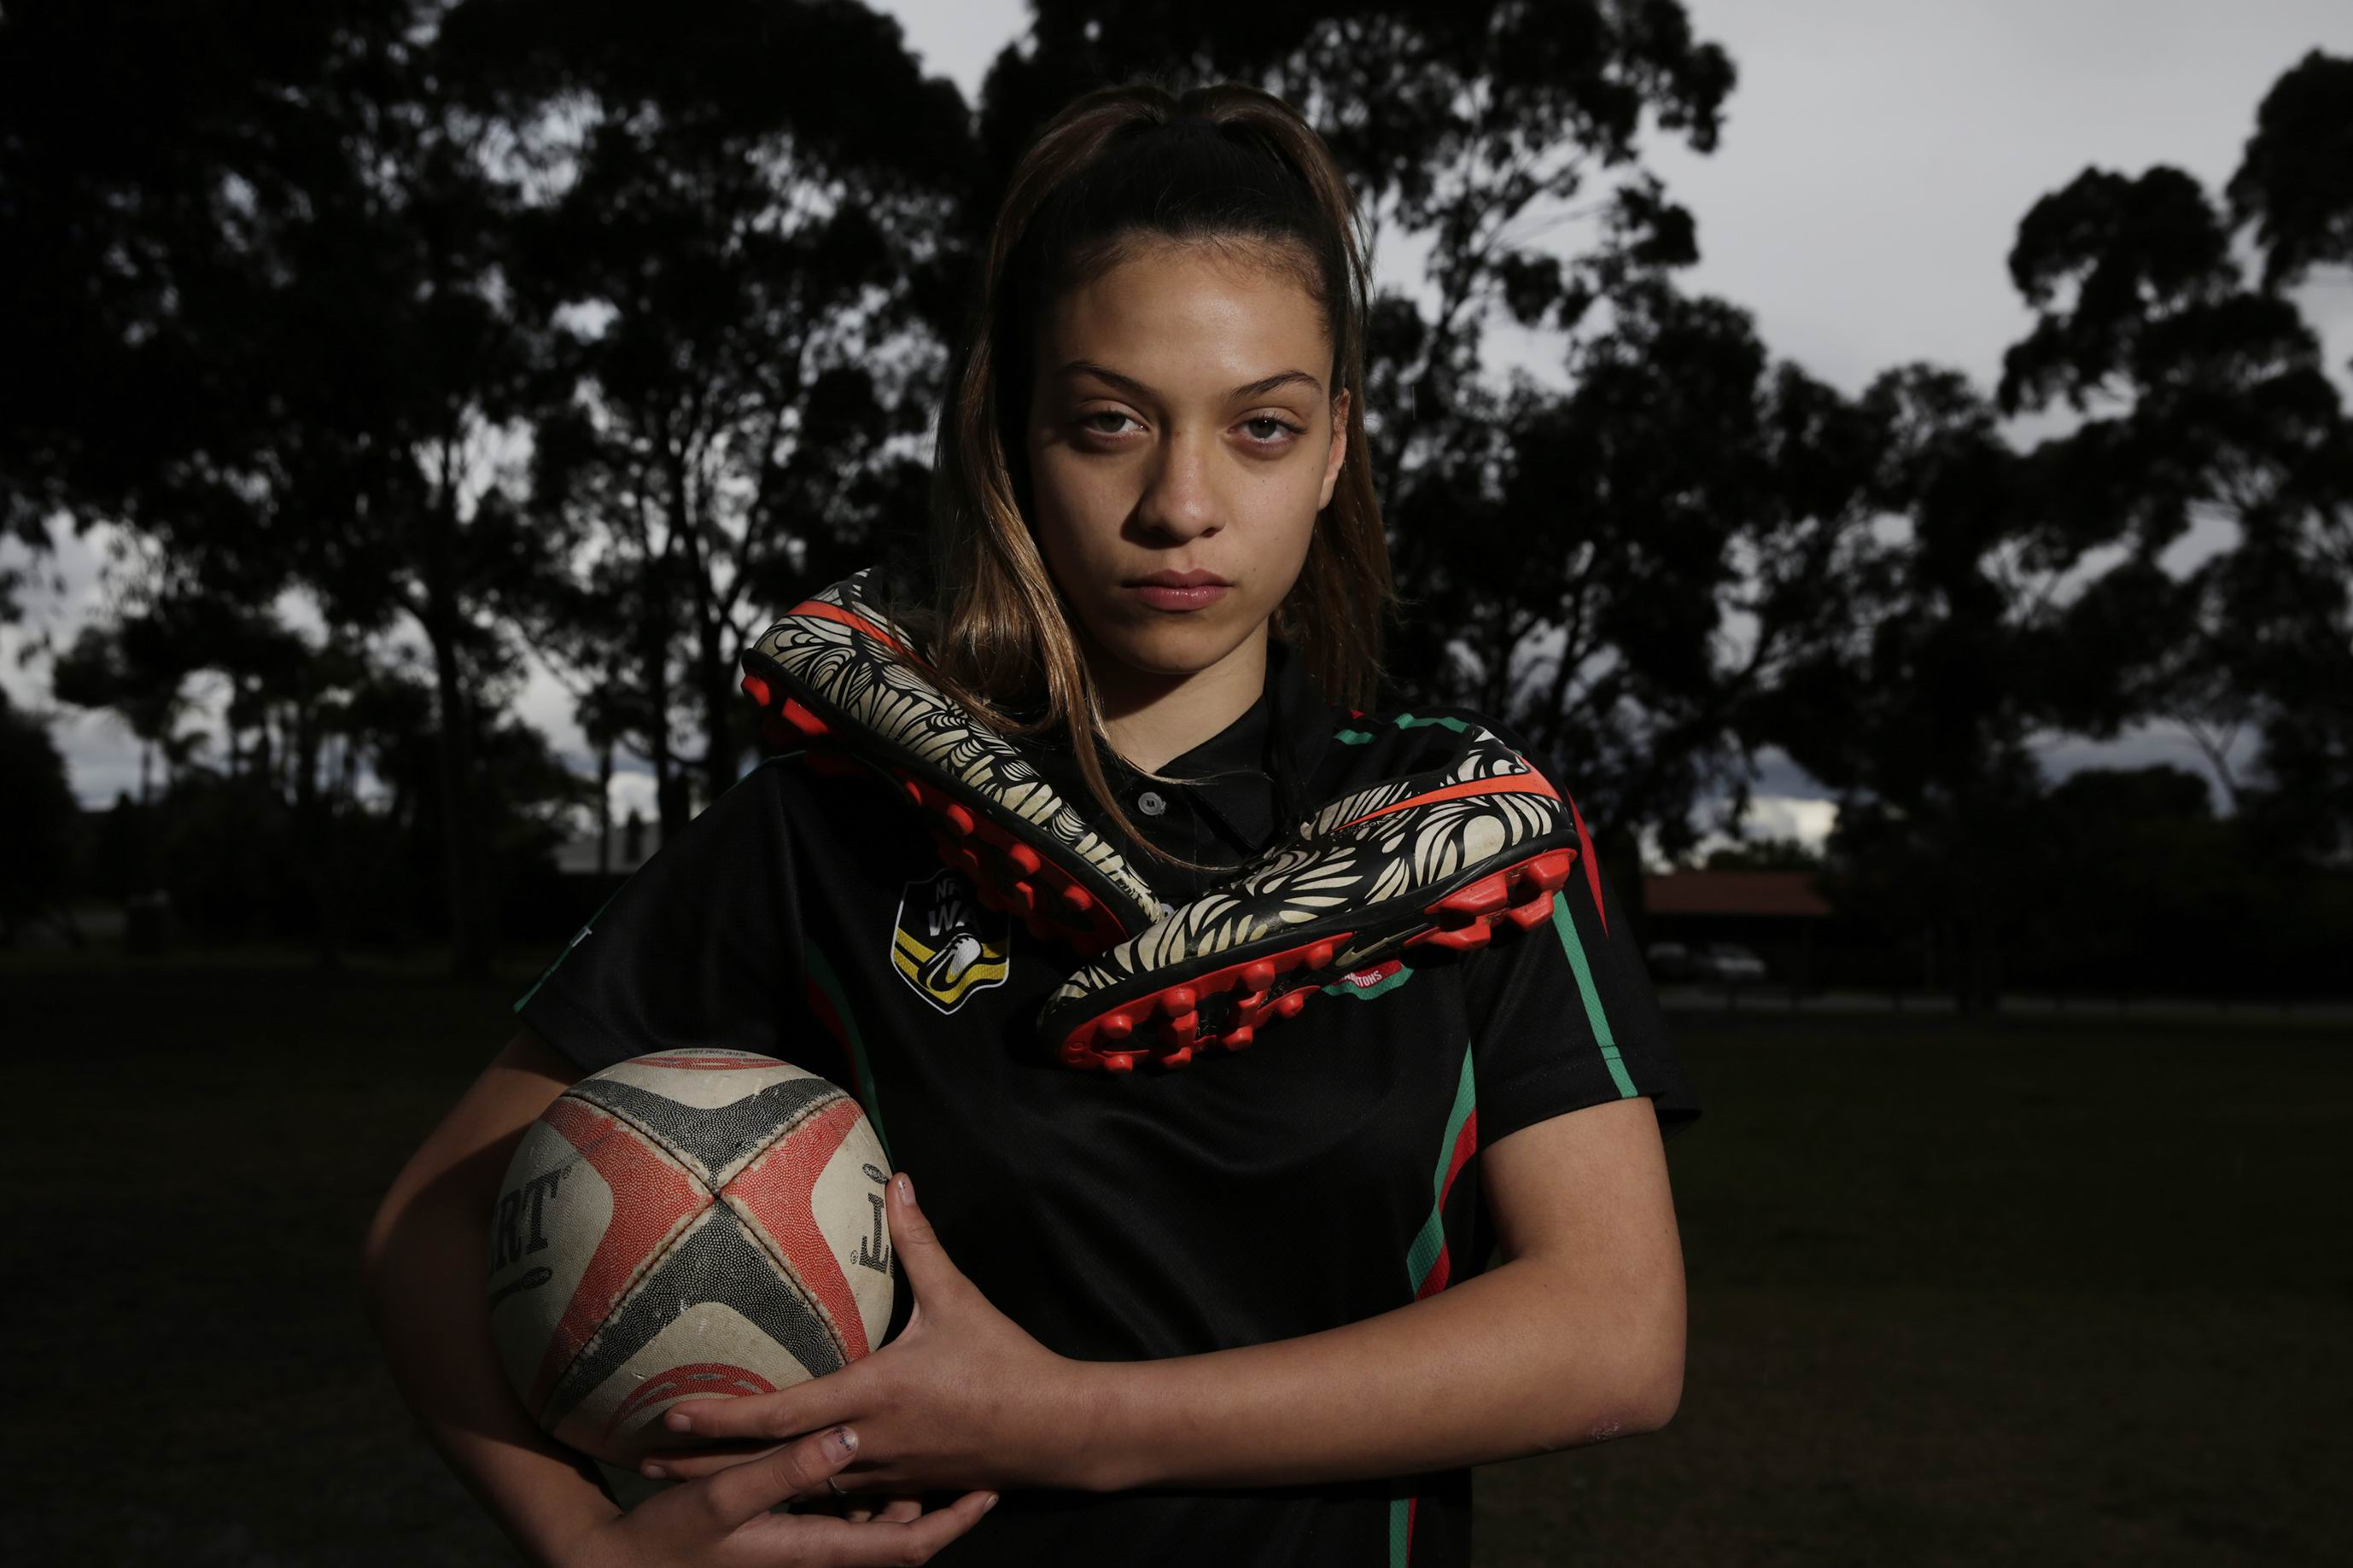 Zakiya Kereopa (15) Noranda plays NRL for Ellenbrook Rabbitohs and her team won their grand final last week and will be representing WA in an upcoming tournament.